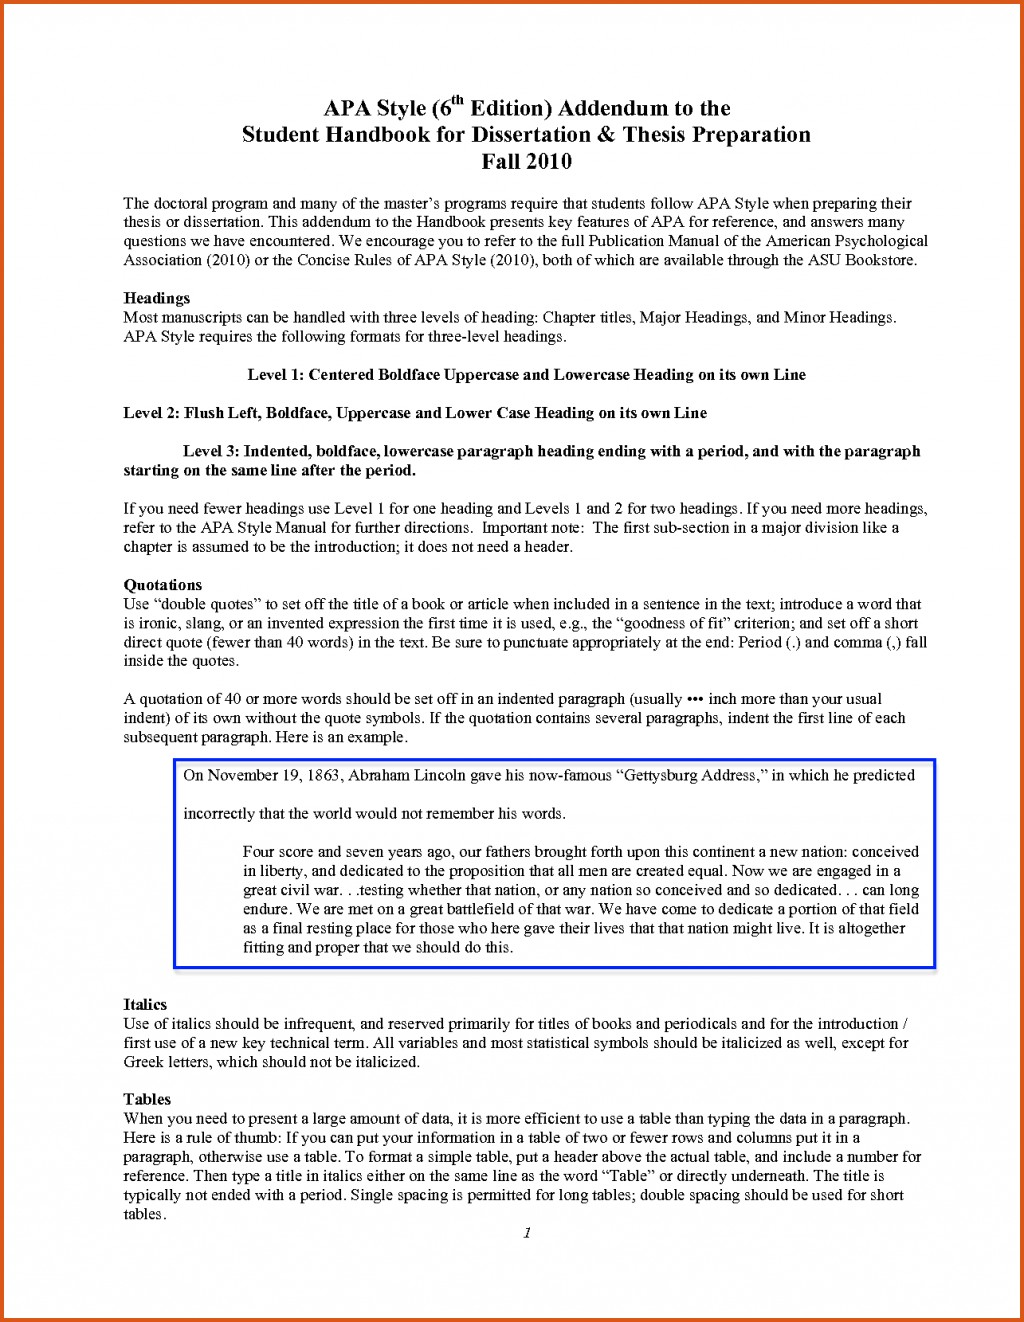 003 Apa 6th Edition Research Paper Headings Bunch Ideas Of Style Guide Example Ive Exceptional Large